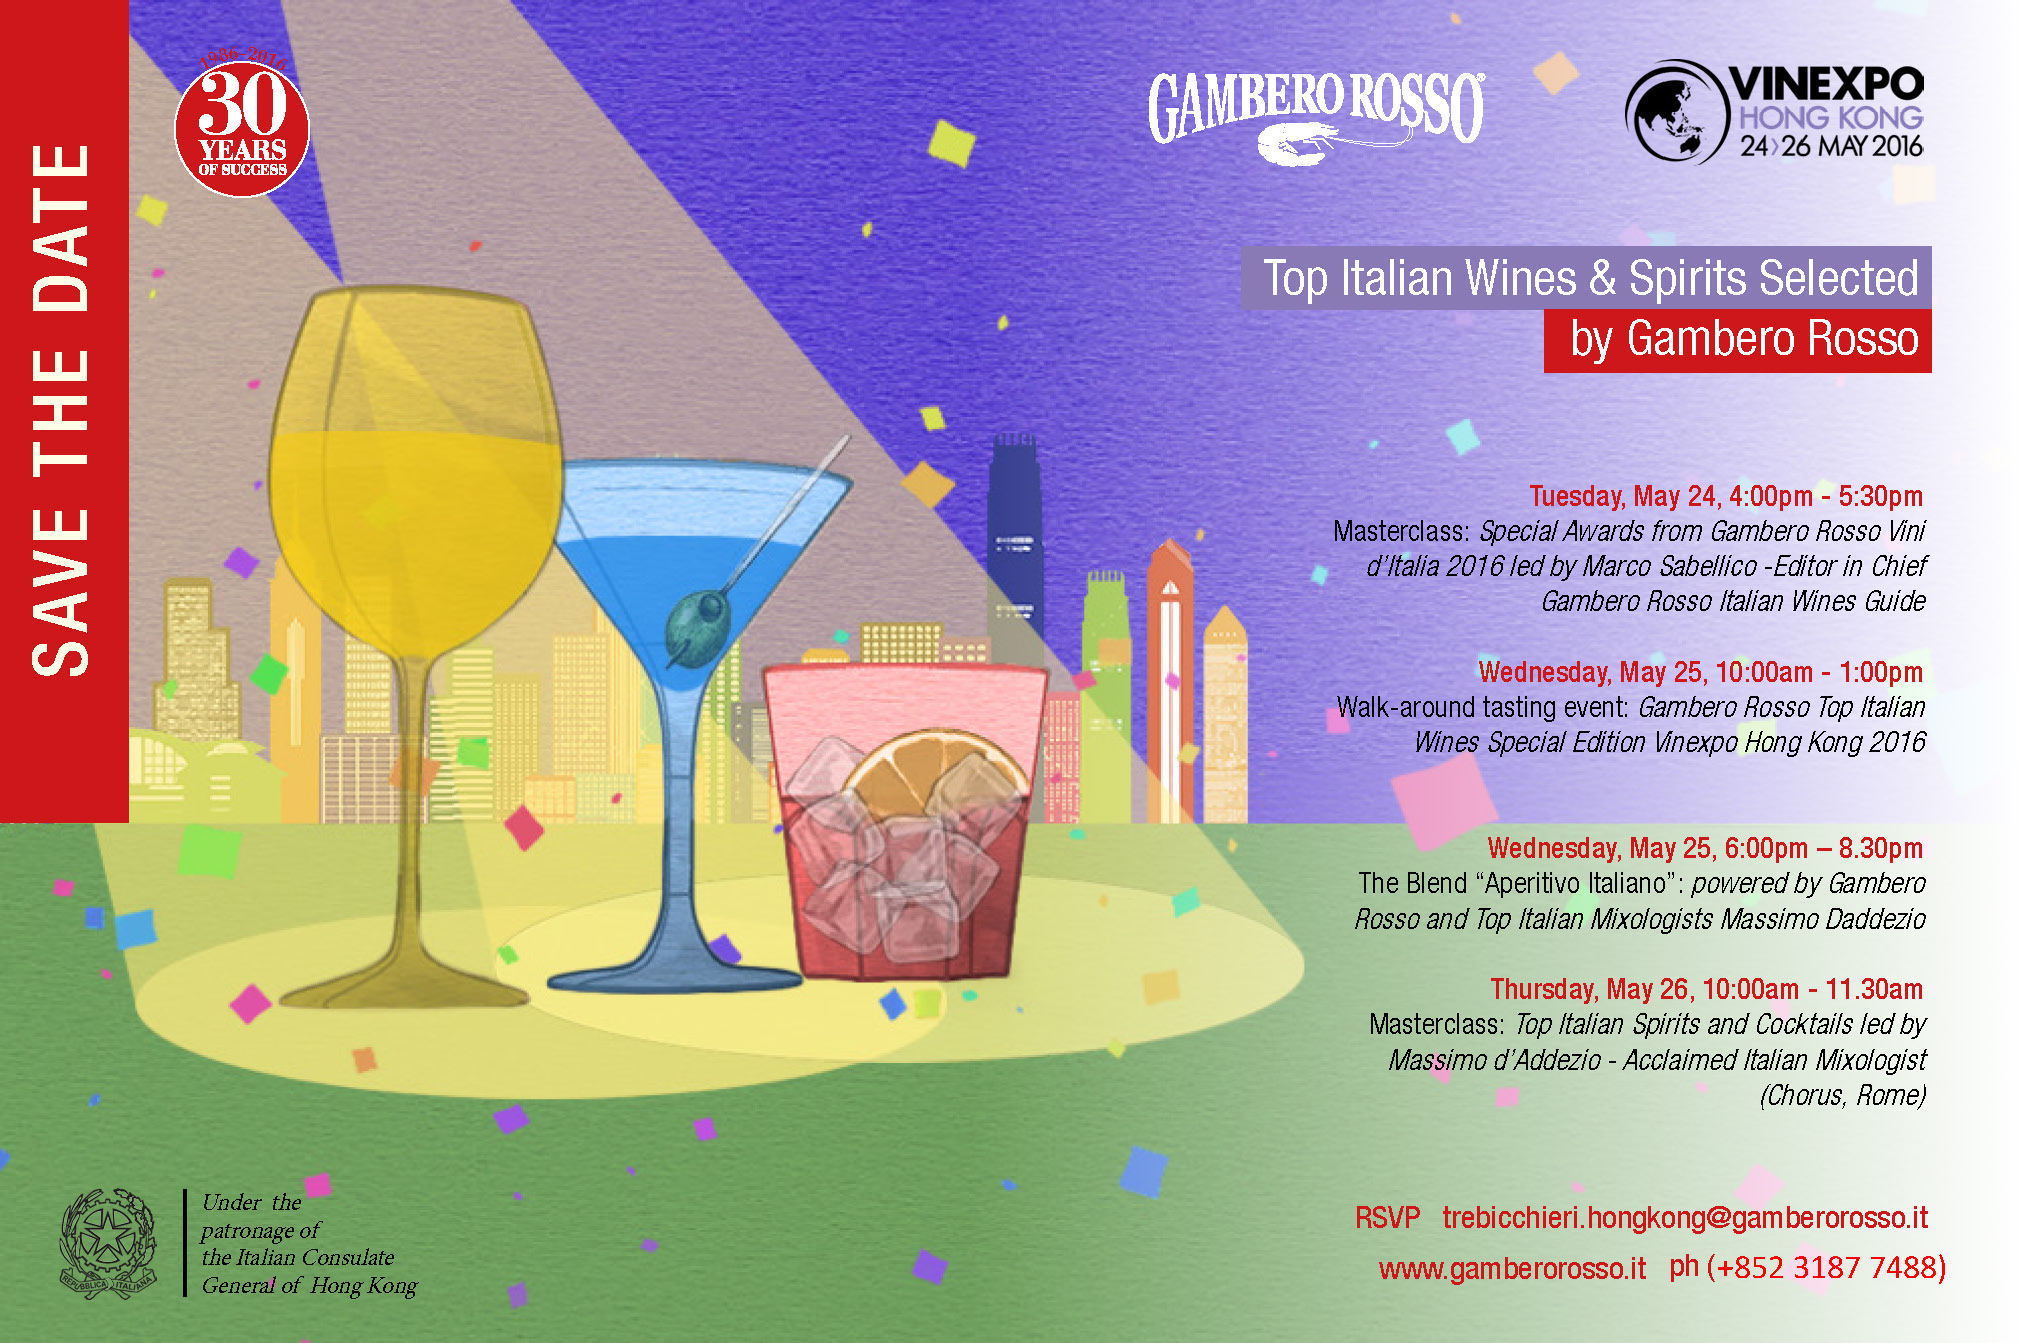 Vinexpo Hong Kong 2016 Gambero Rosso Event's